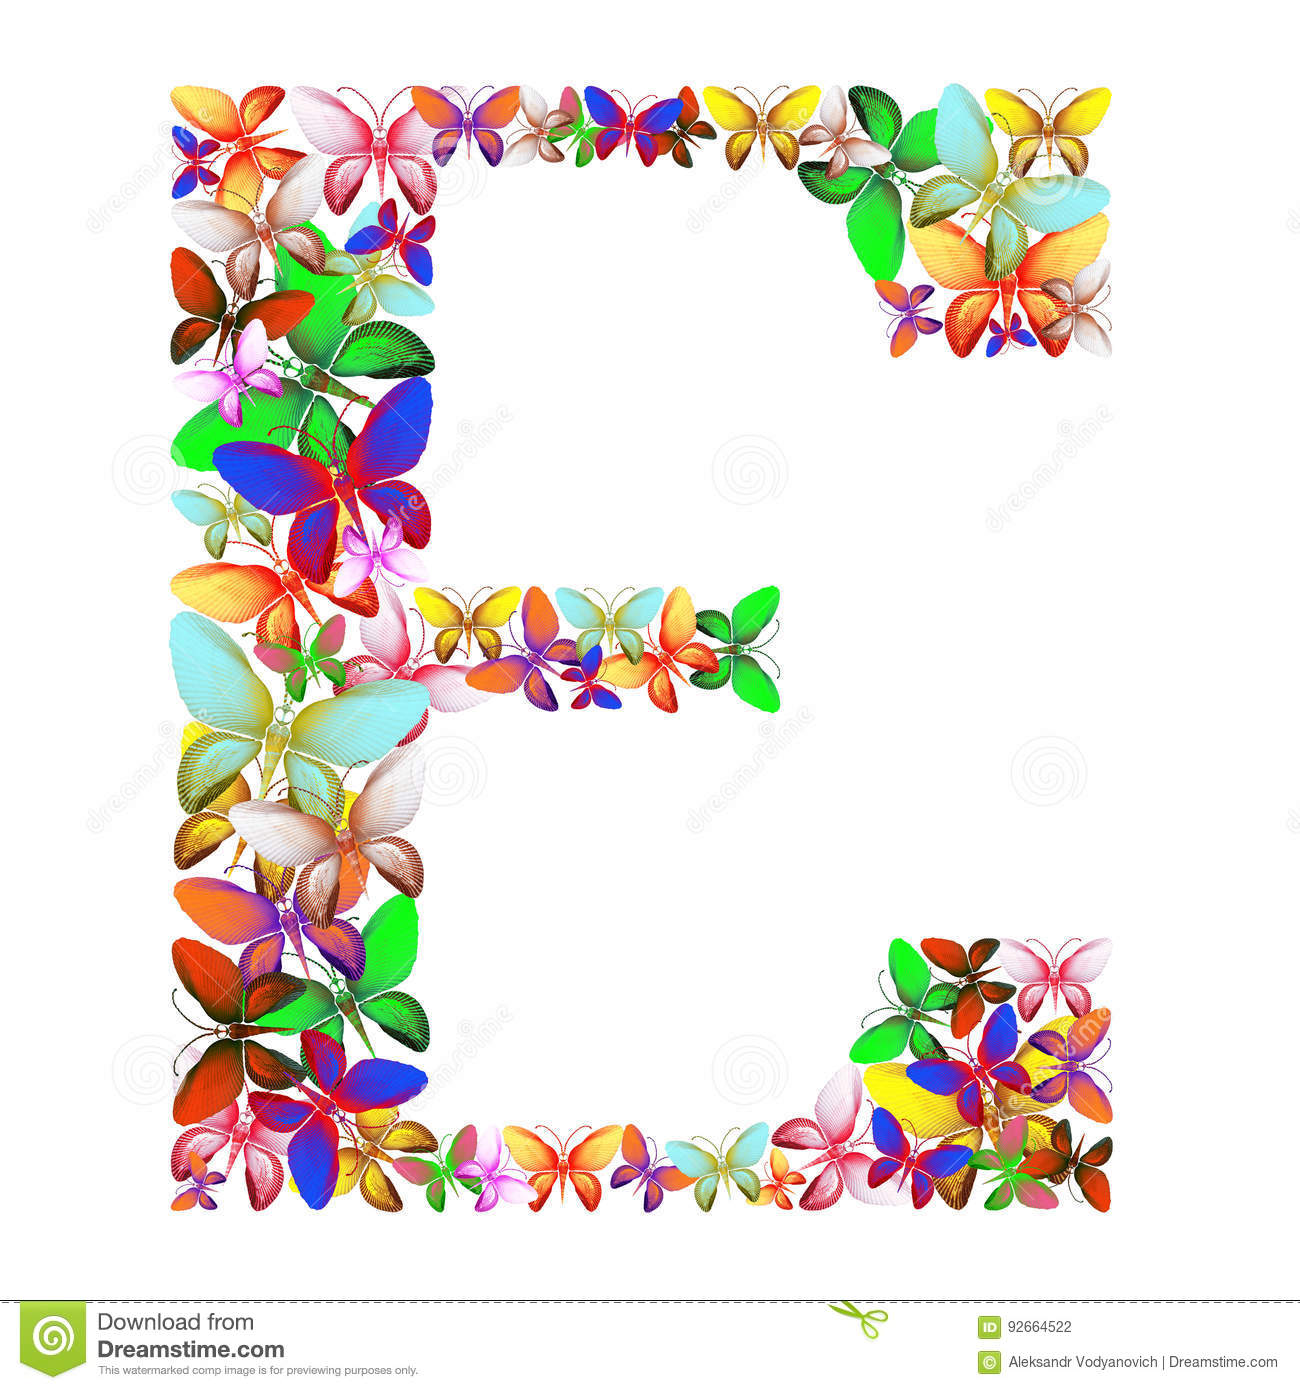 The Letter E Made Up Of Lots Of Butterflies Of Different